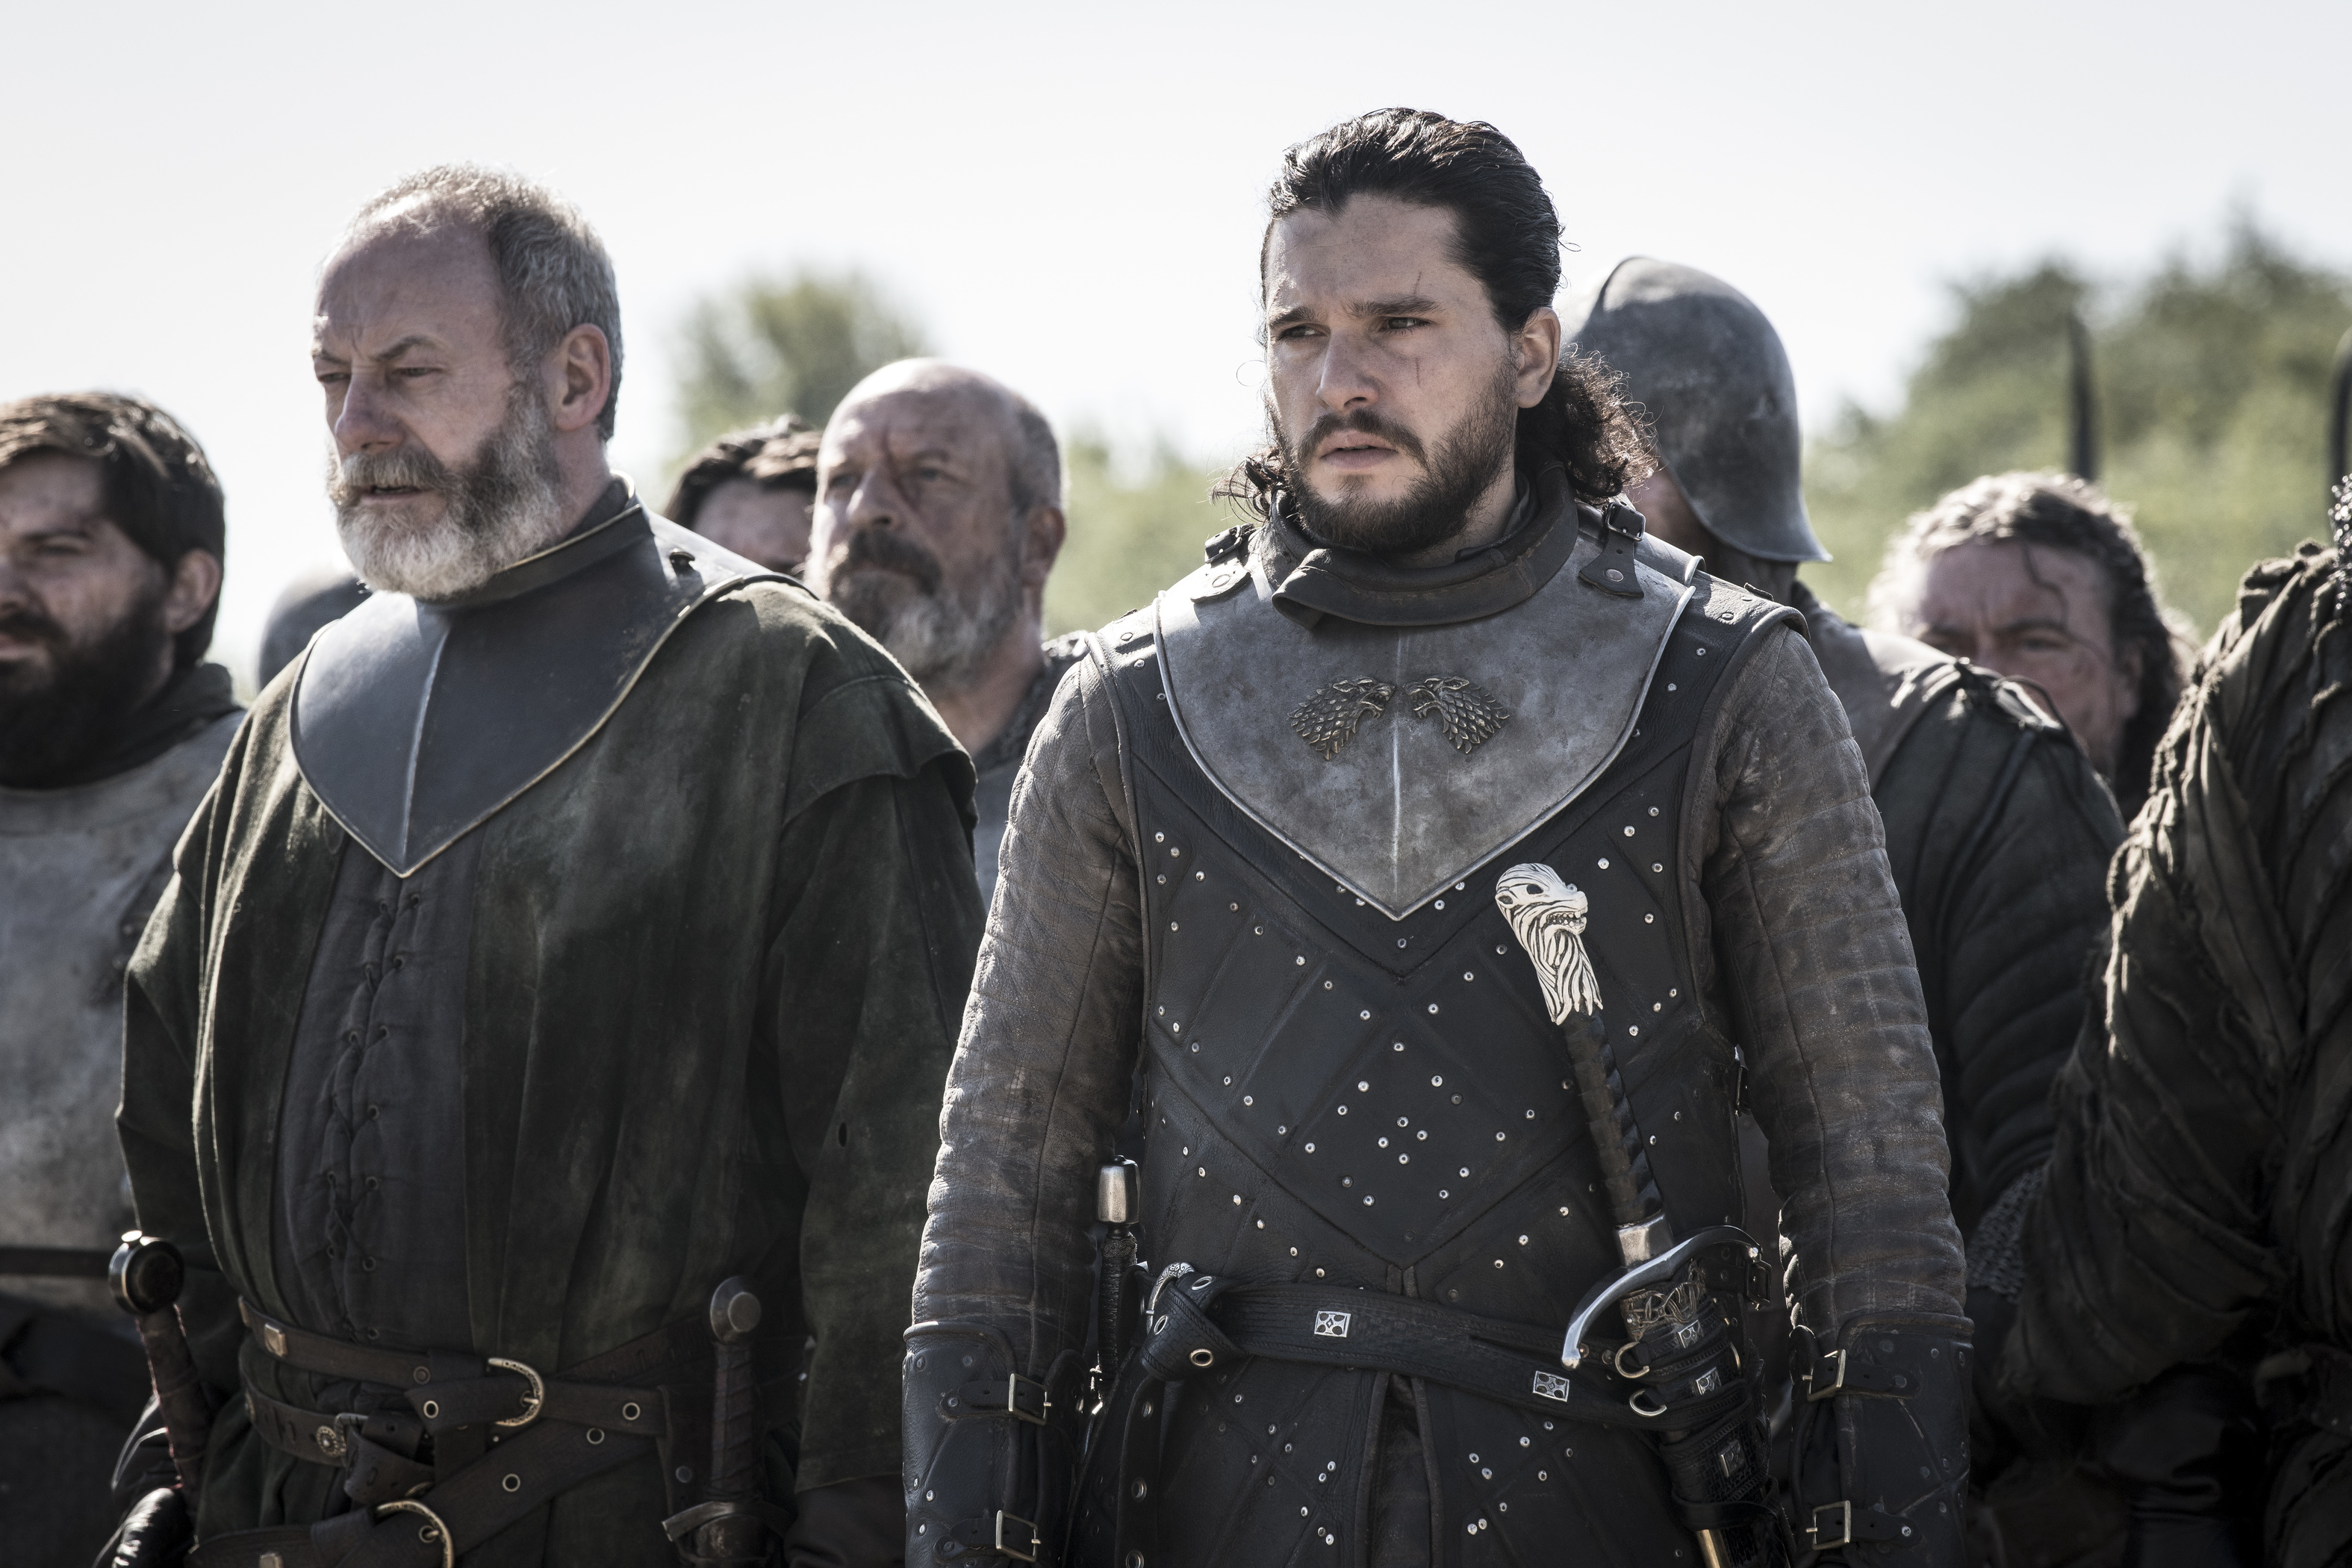 20190514-Game-of-Thrones-02.jpg